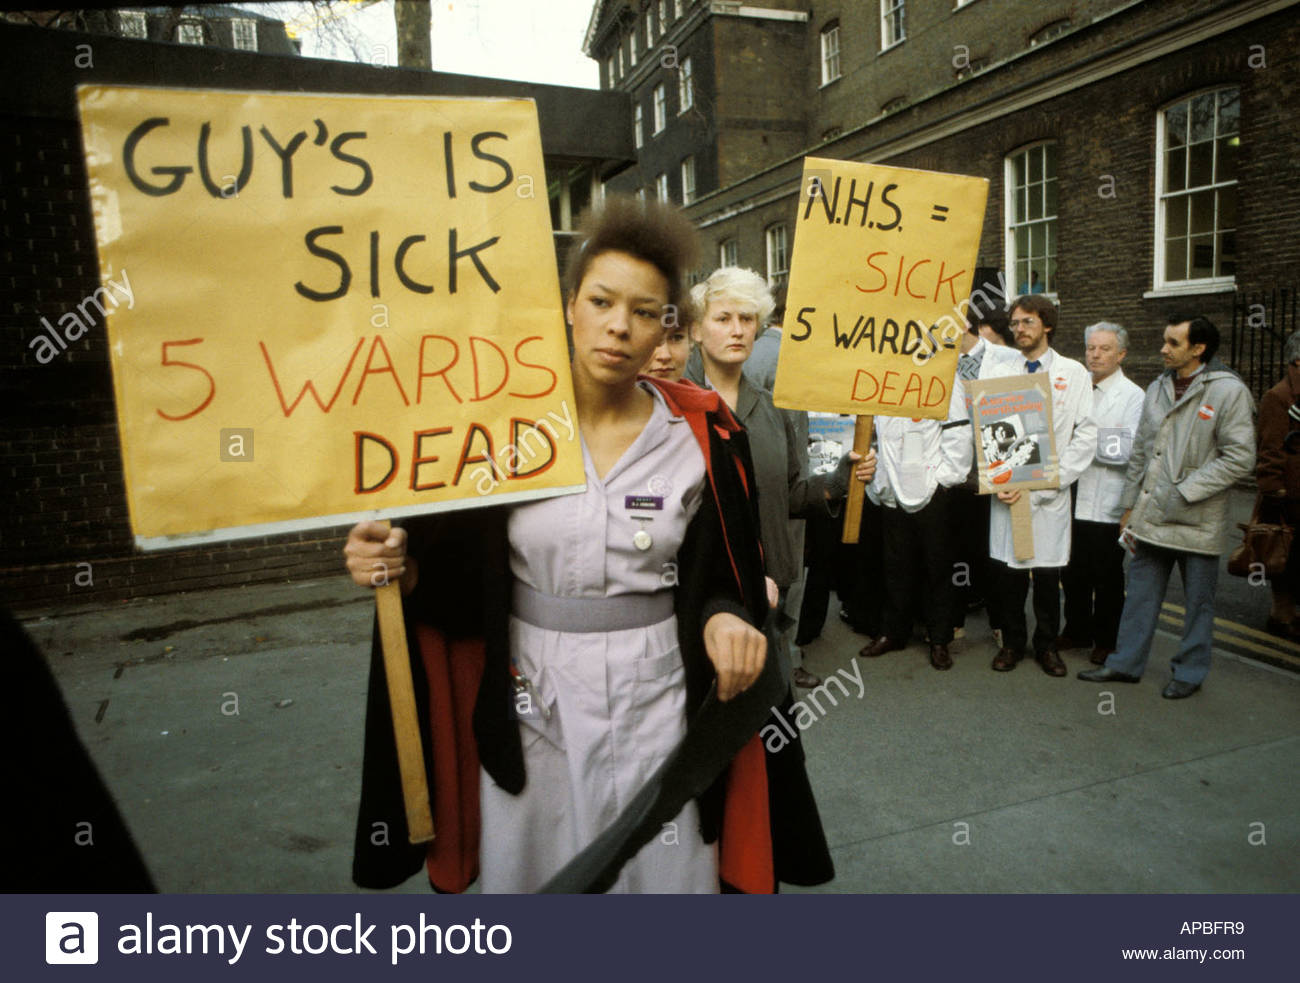 Nurses protest outside Guys Hospital at cuts in NHS funding and ward closures, London 1984 - Stock Image